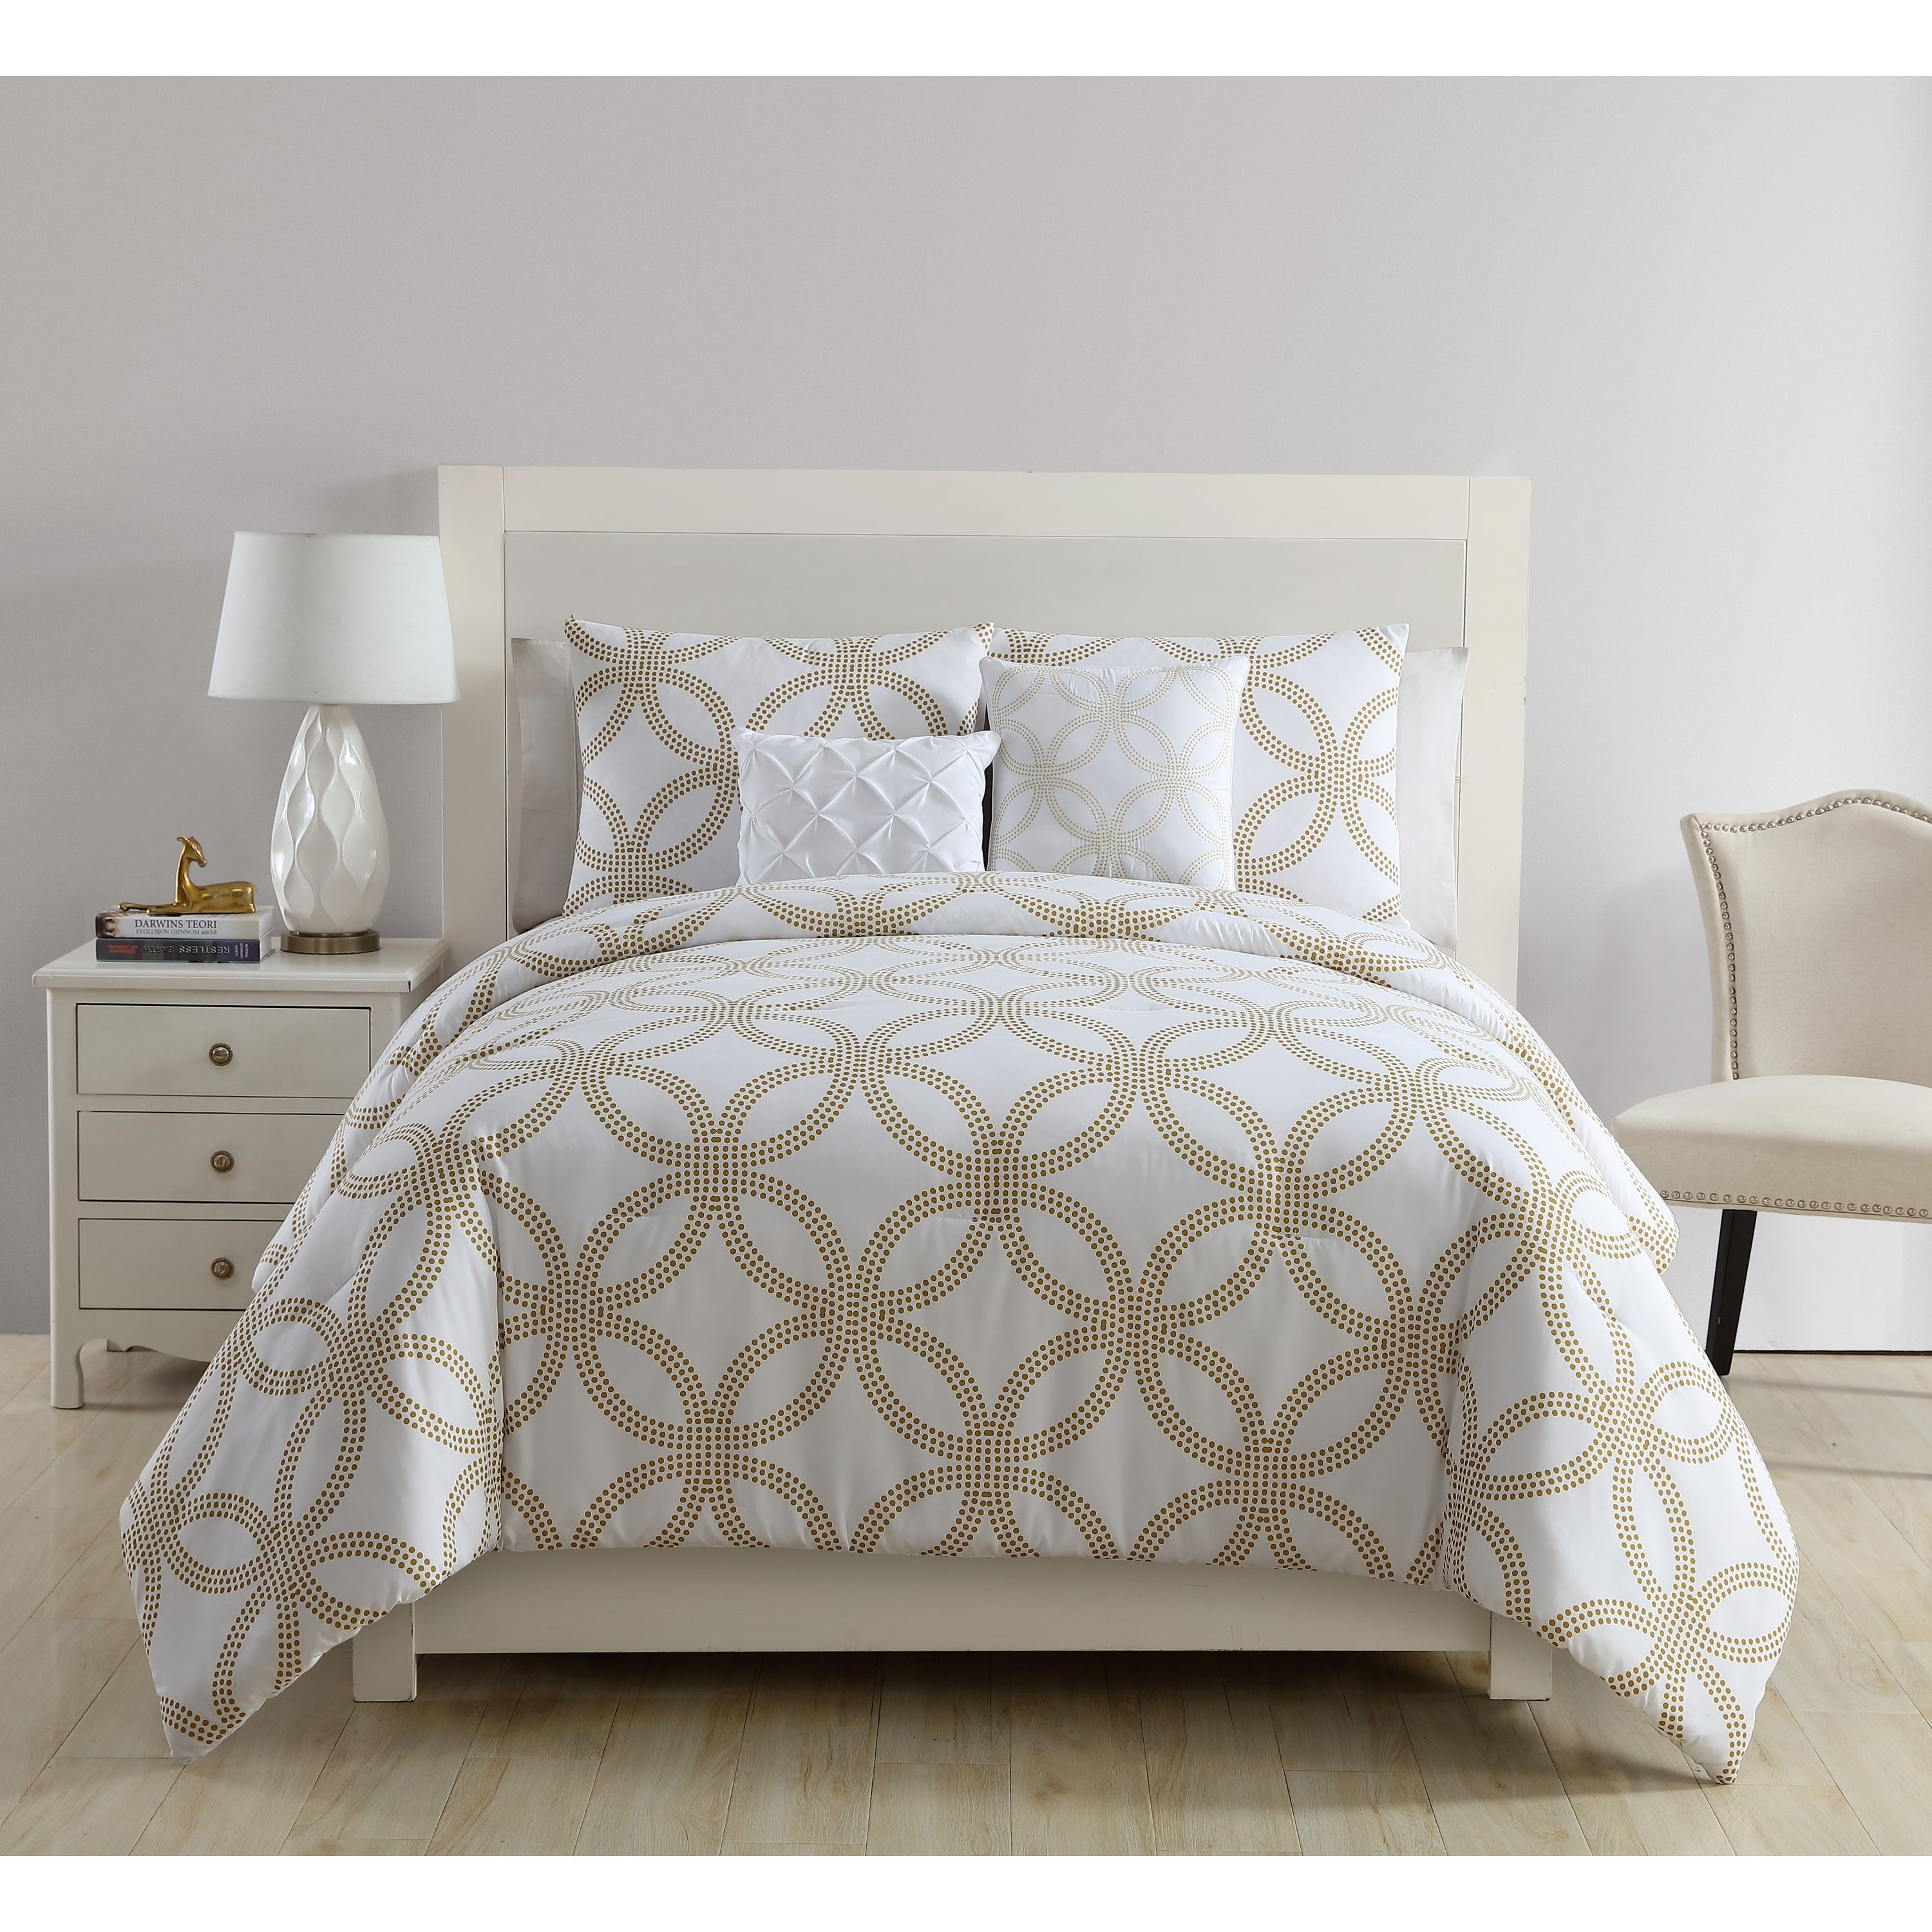 Queen King Bed Black White Floral Geometric Circles 7 pc Comforter Set Bedding